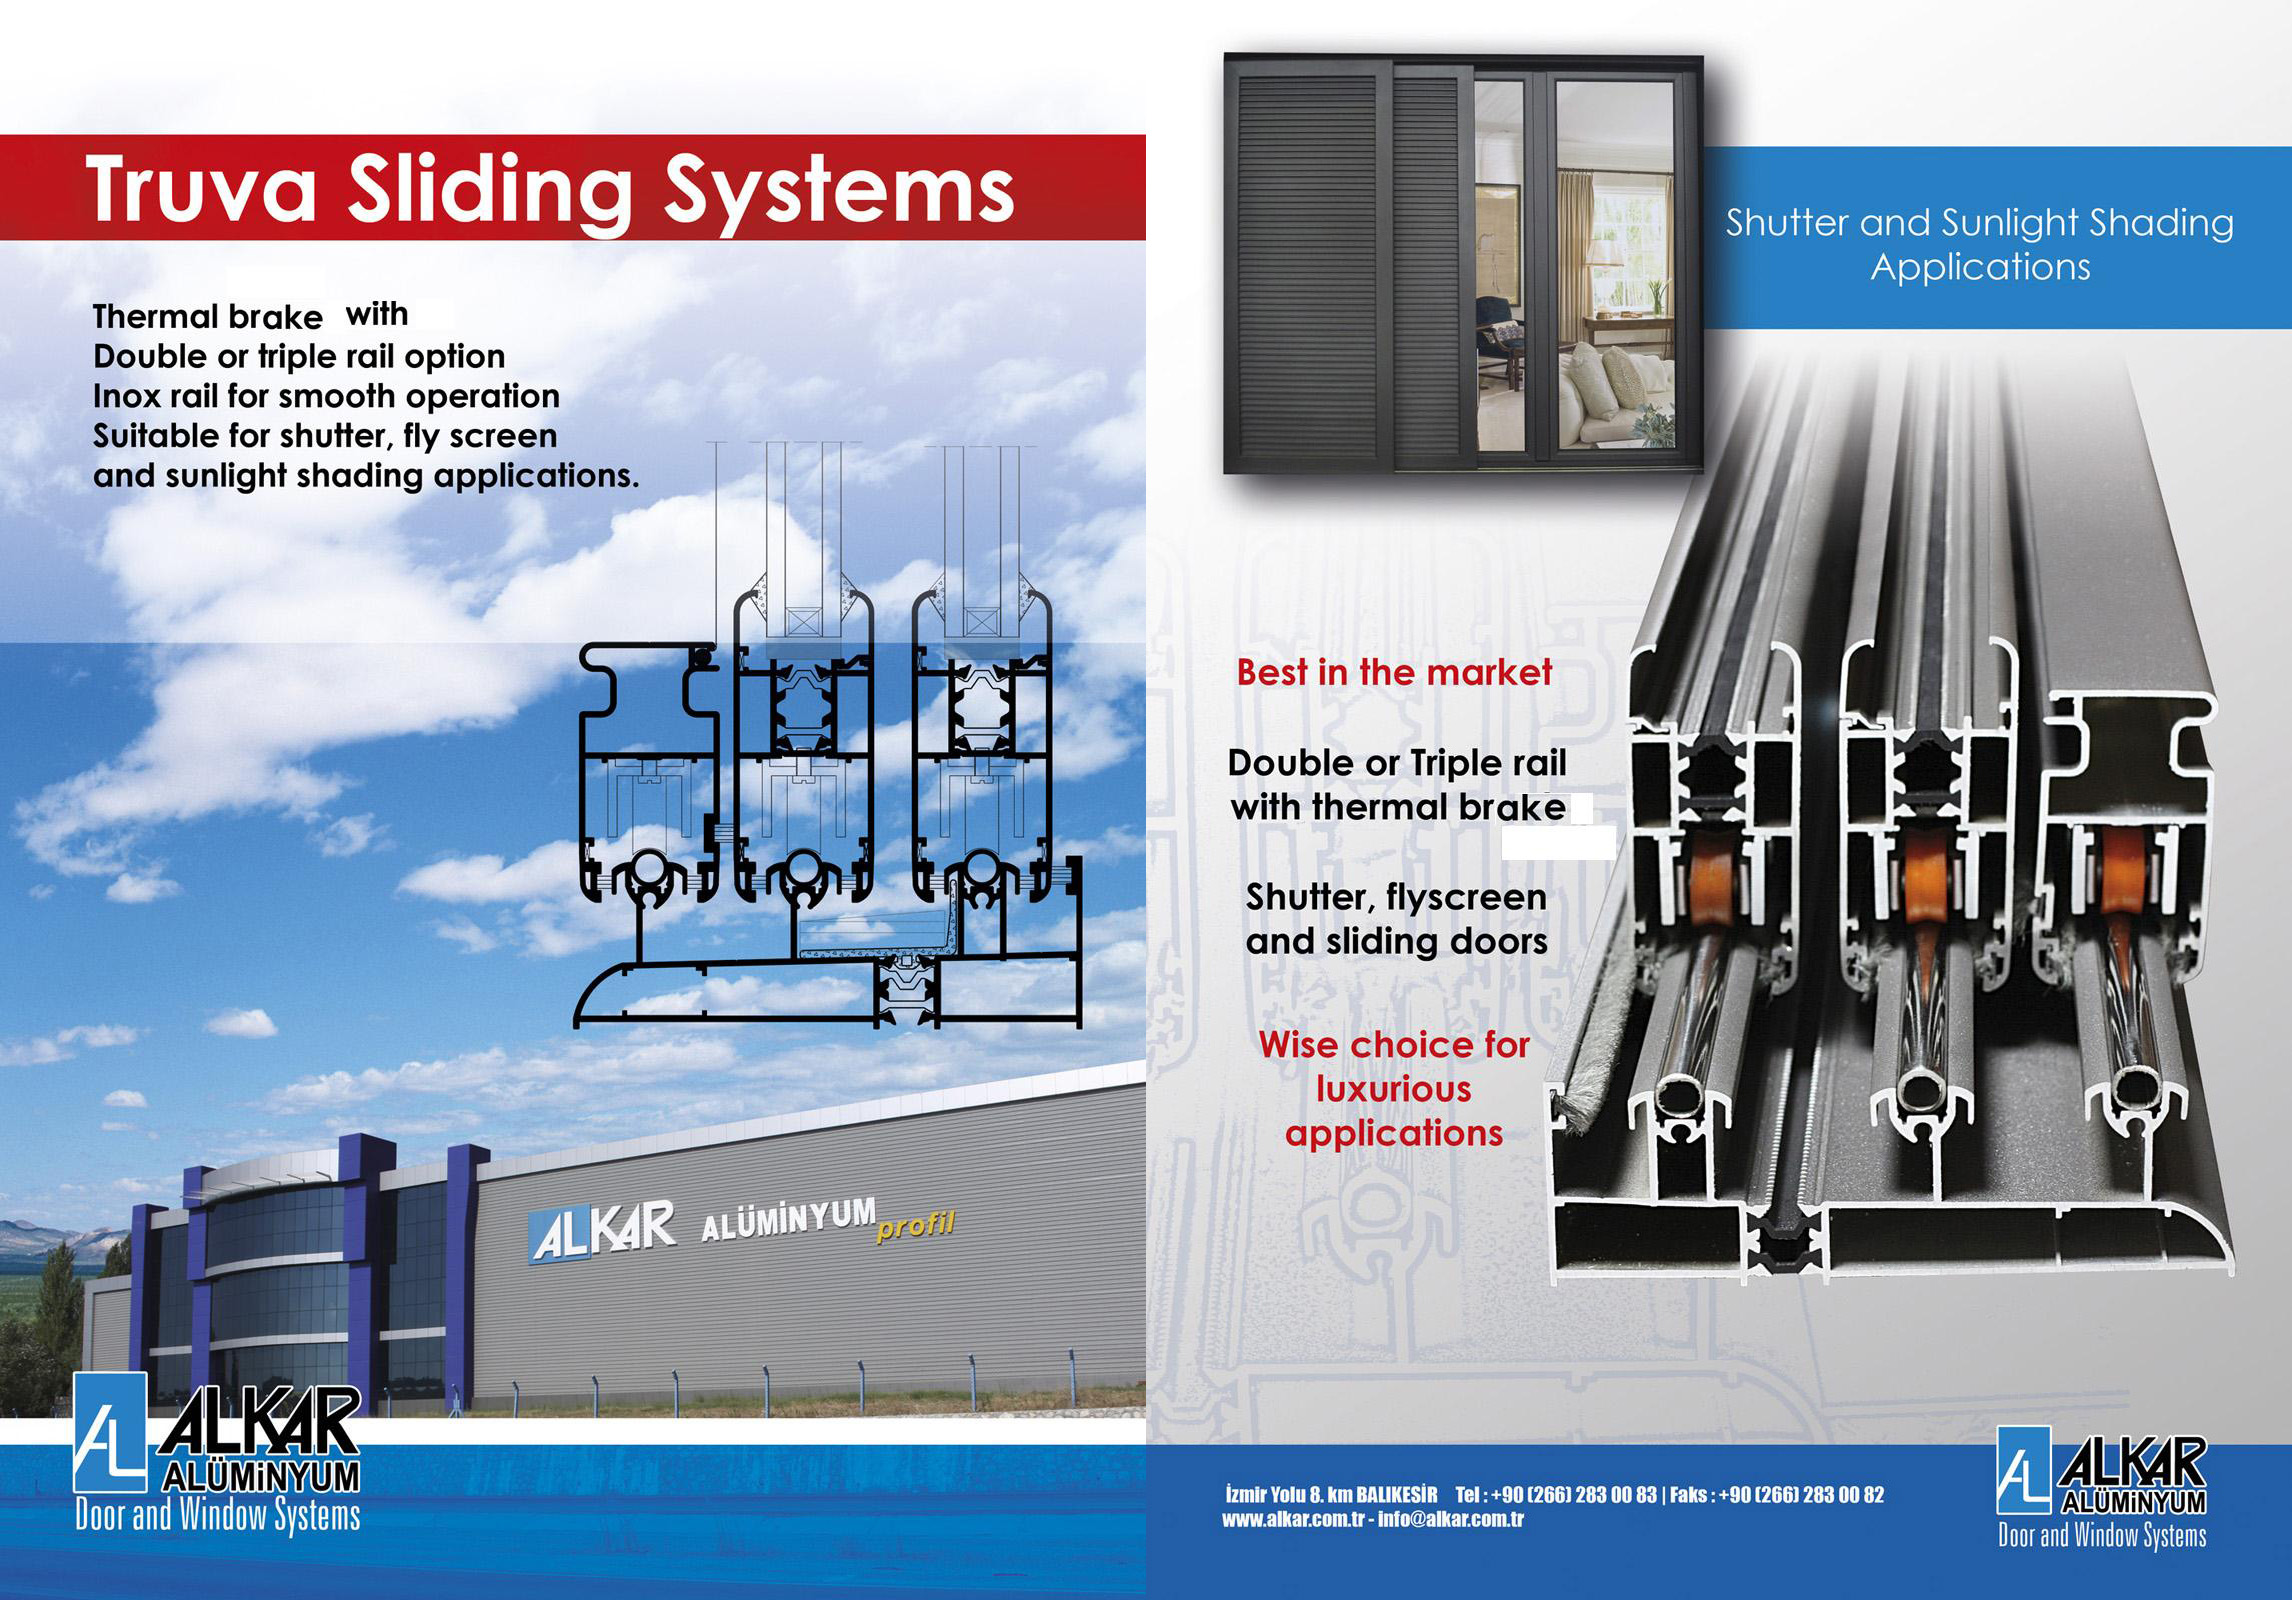 TRUVA SLIDING SYSTEMS